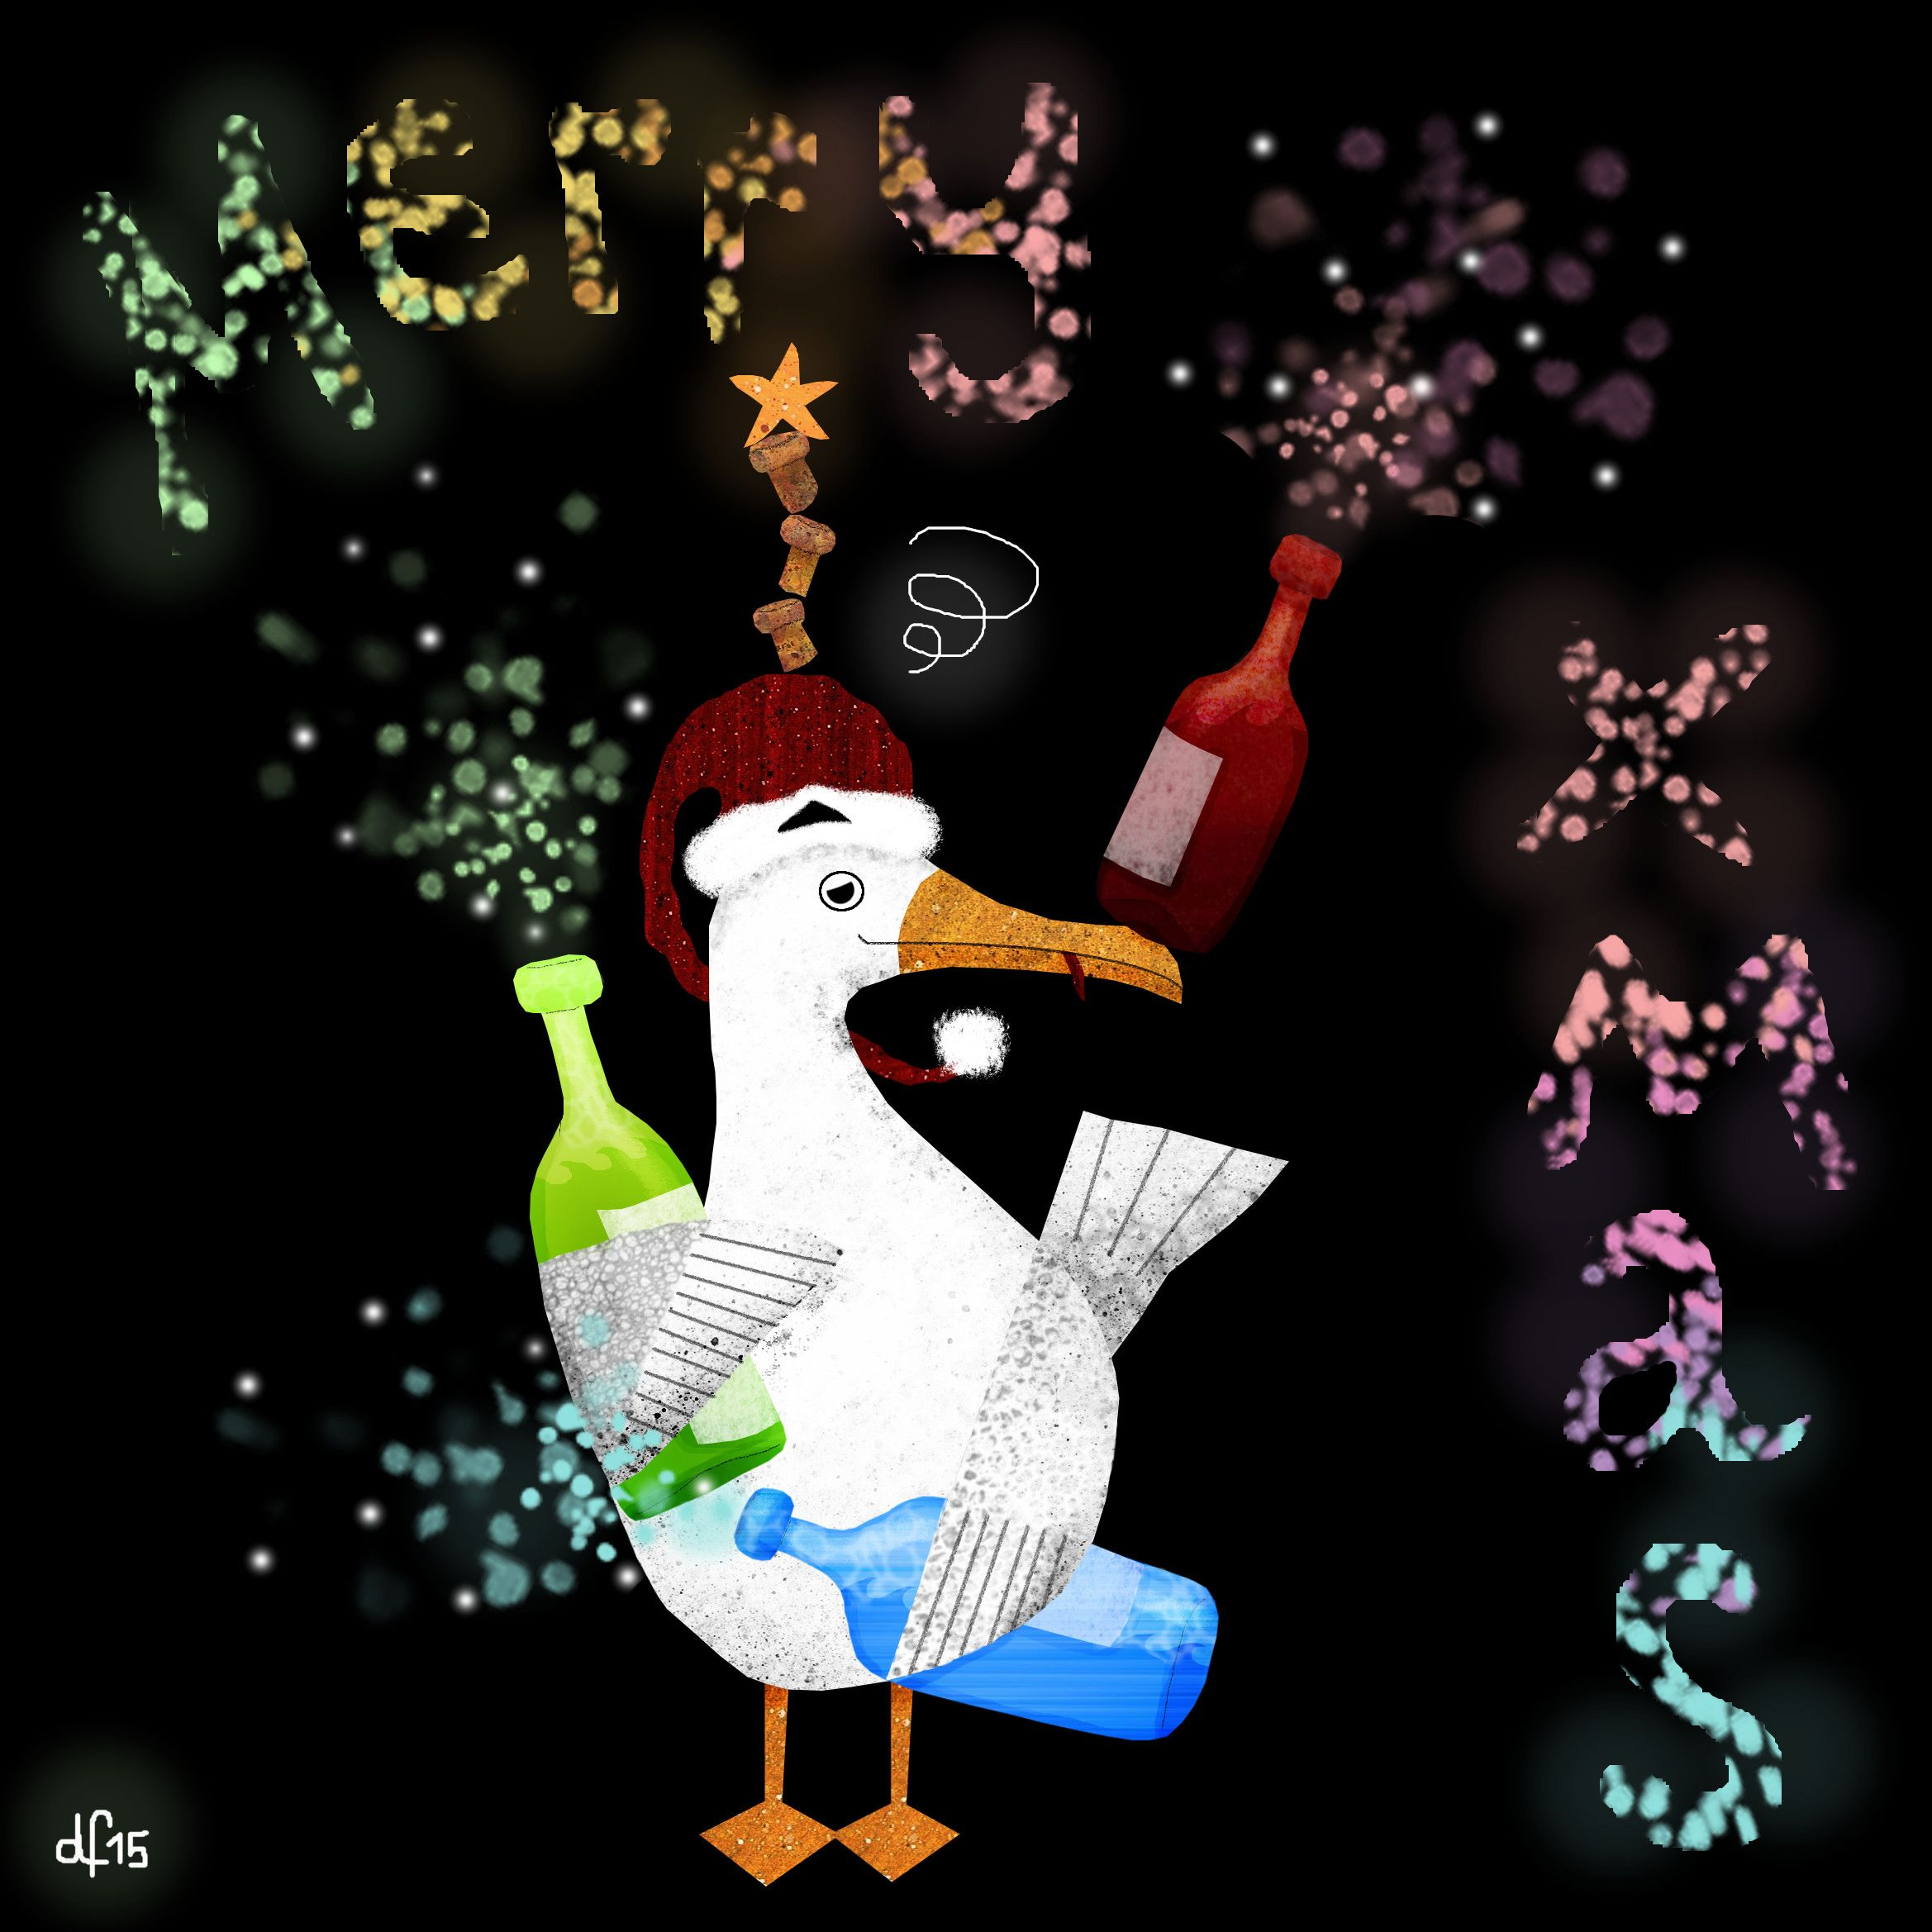 Merry Christmas Wishes The Slightly Tipsy Seagull Hic